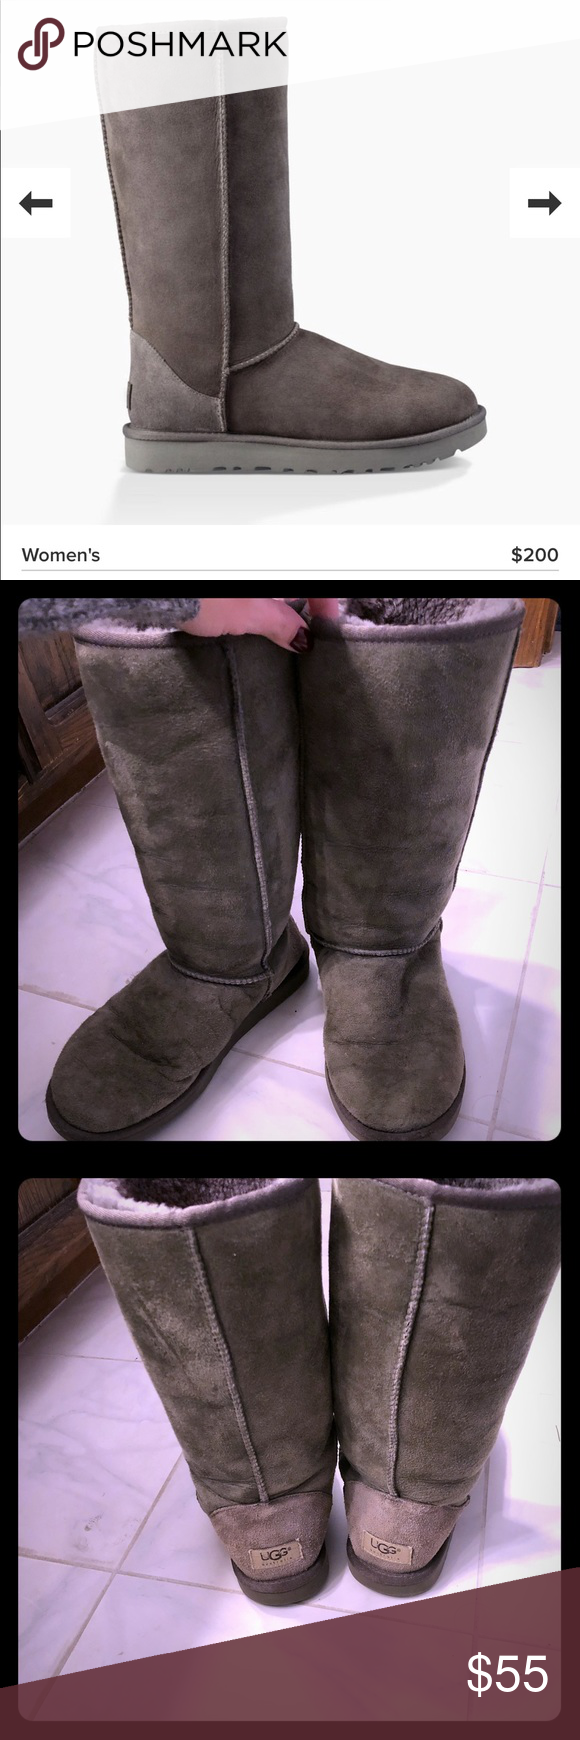 efdbce91653588b77727702a2bad09e6 - How To Get The Feet Smell Out Of Uggs